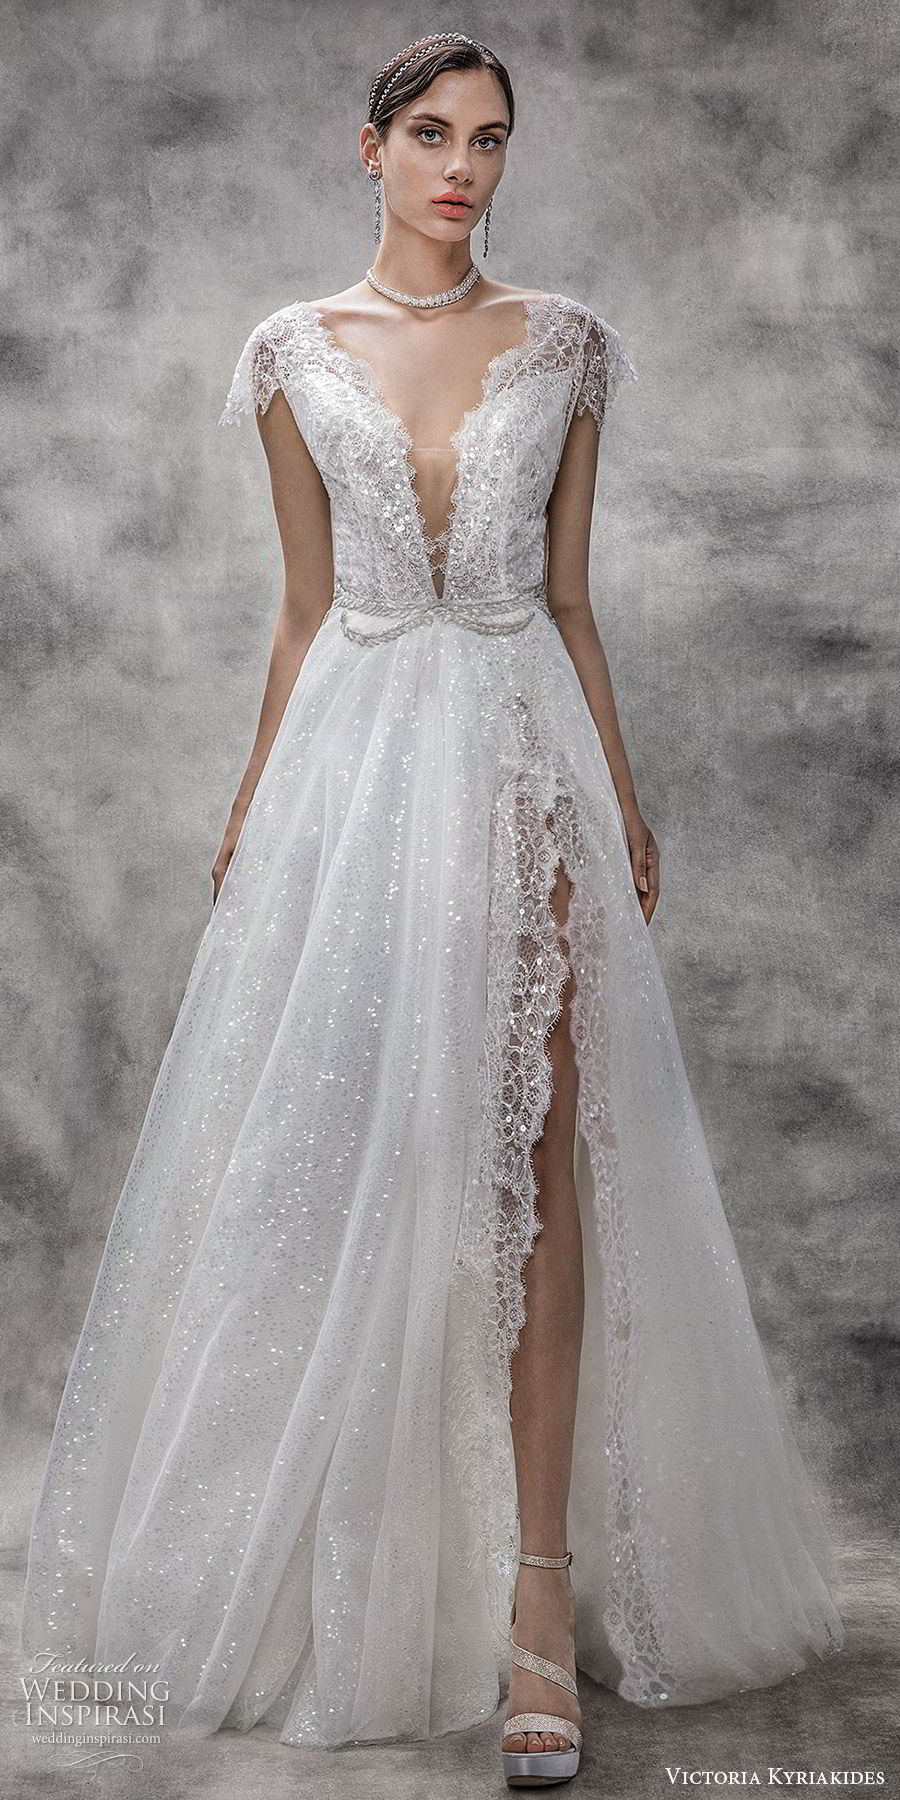 victoria kyriakides spring 2020 bridal illusion flutter sleeves deep v neckline fully embellished lace a line ball gown wedding dress (10) chapel train slit skirt glitzy romantic mv